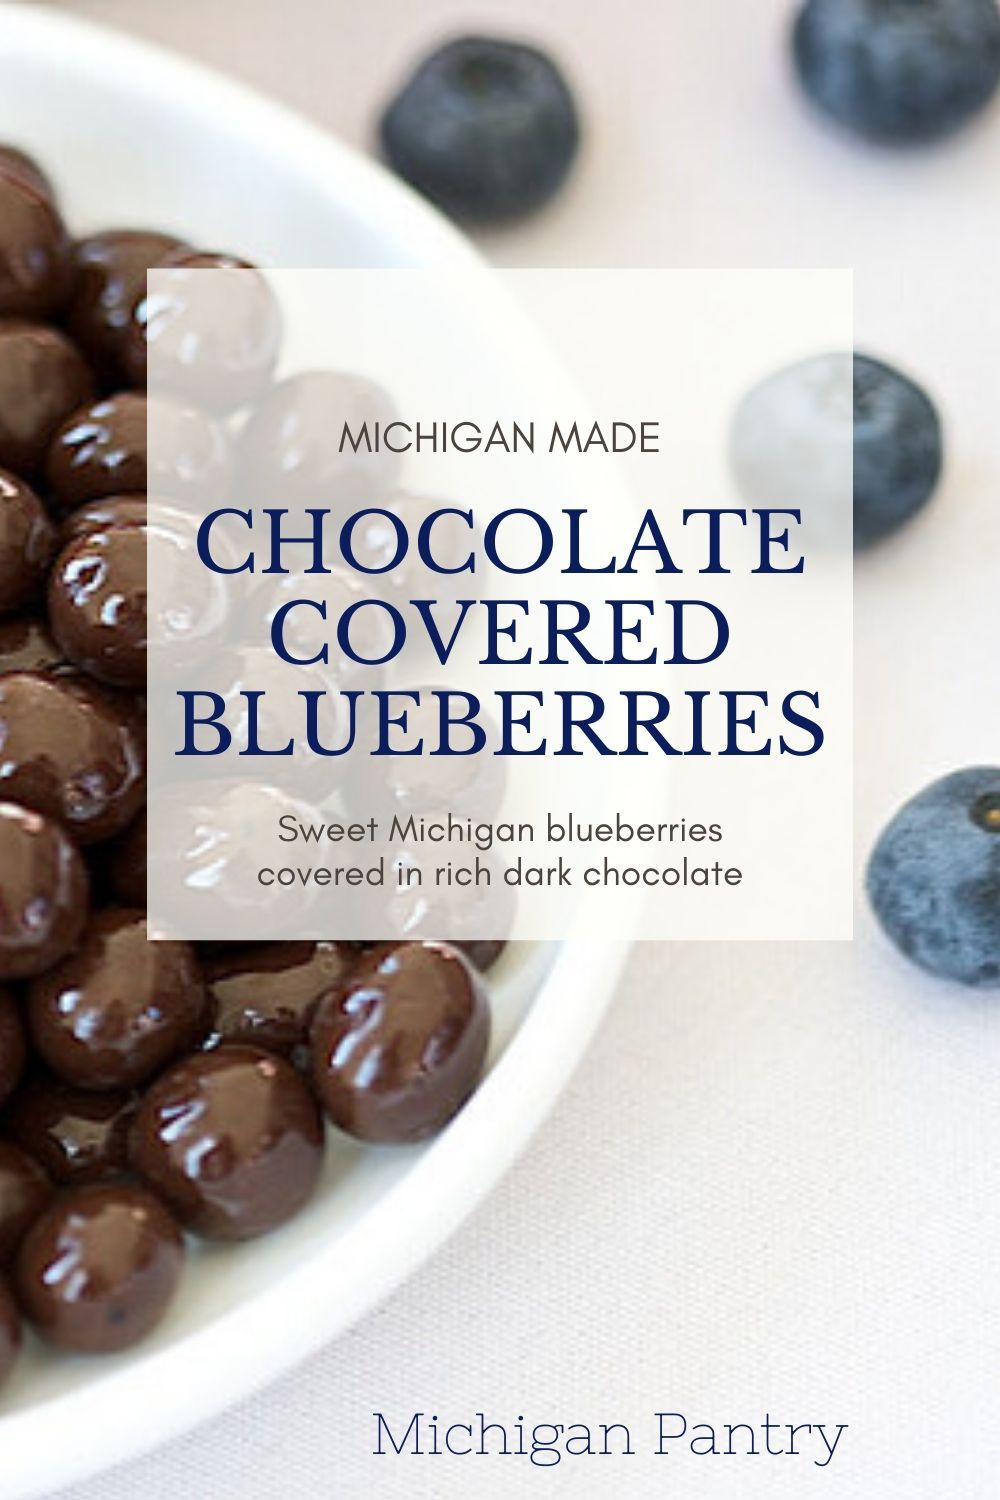 Chocolate blueberries in 2020 chocolate covered